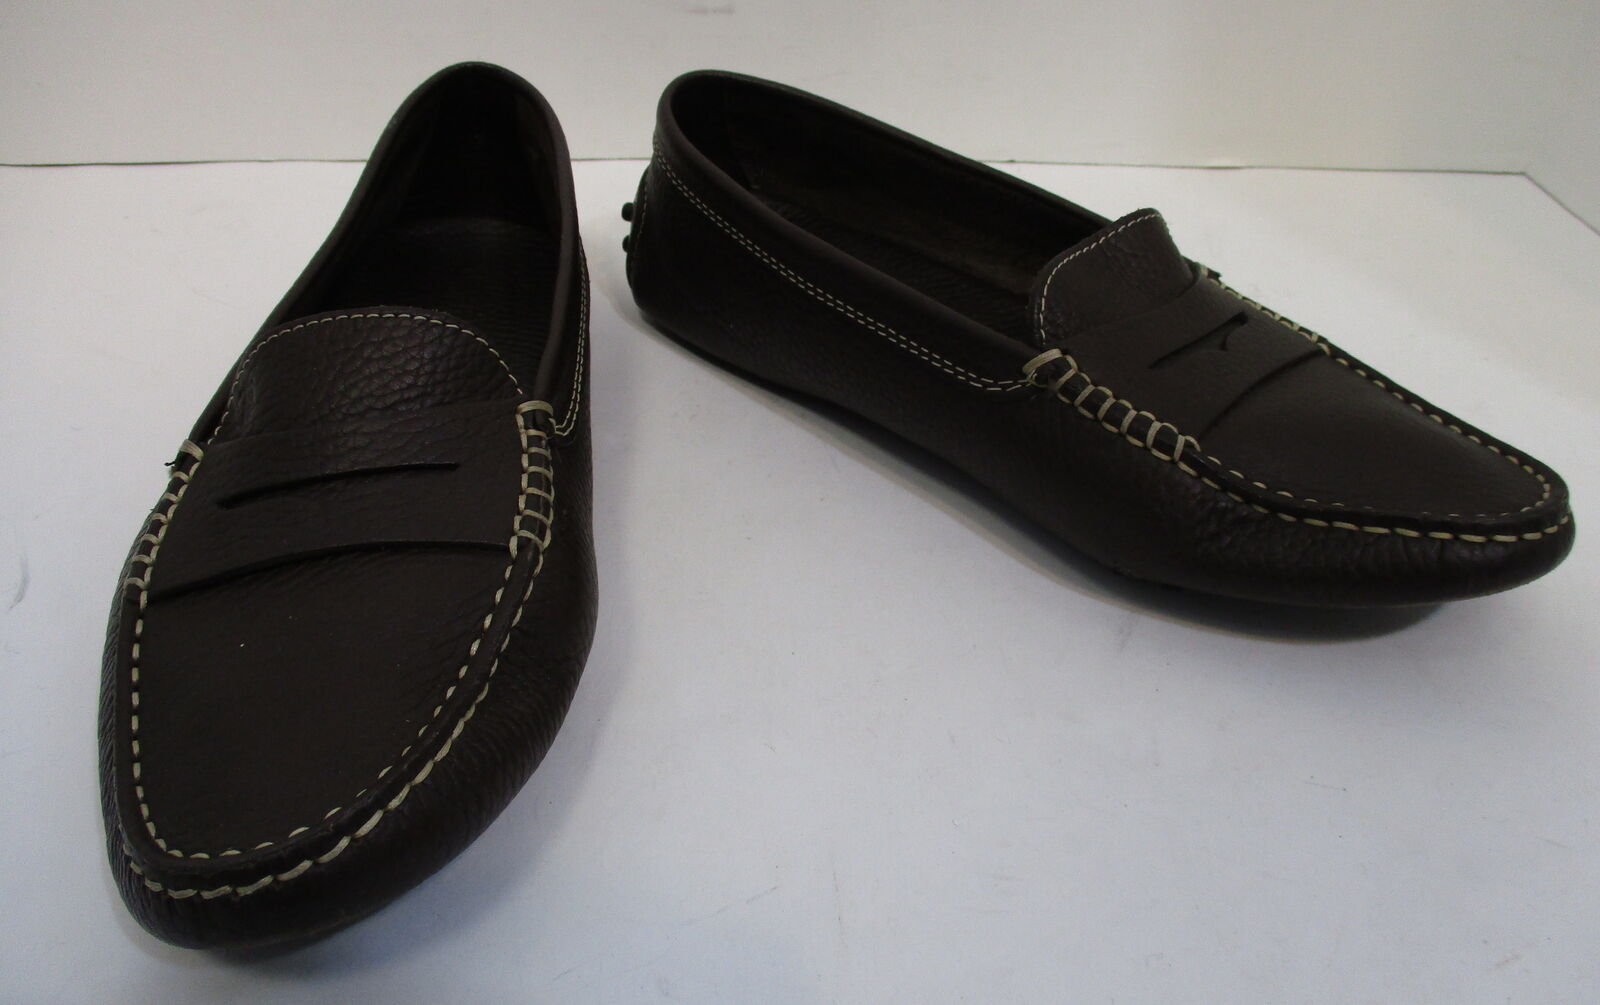 TOD'S Braun pebbled Leder driving penny loafers loafers loafers sz 7 c9294b